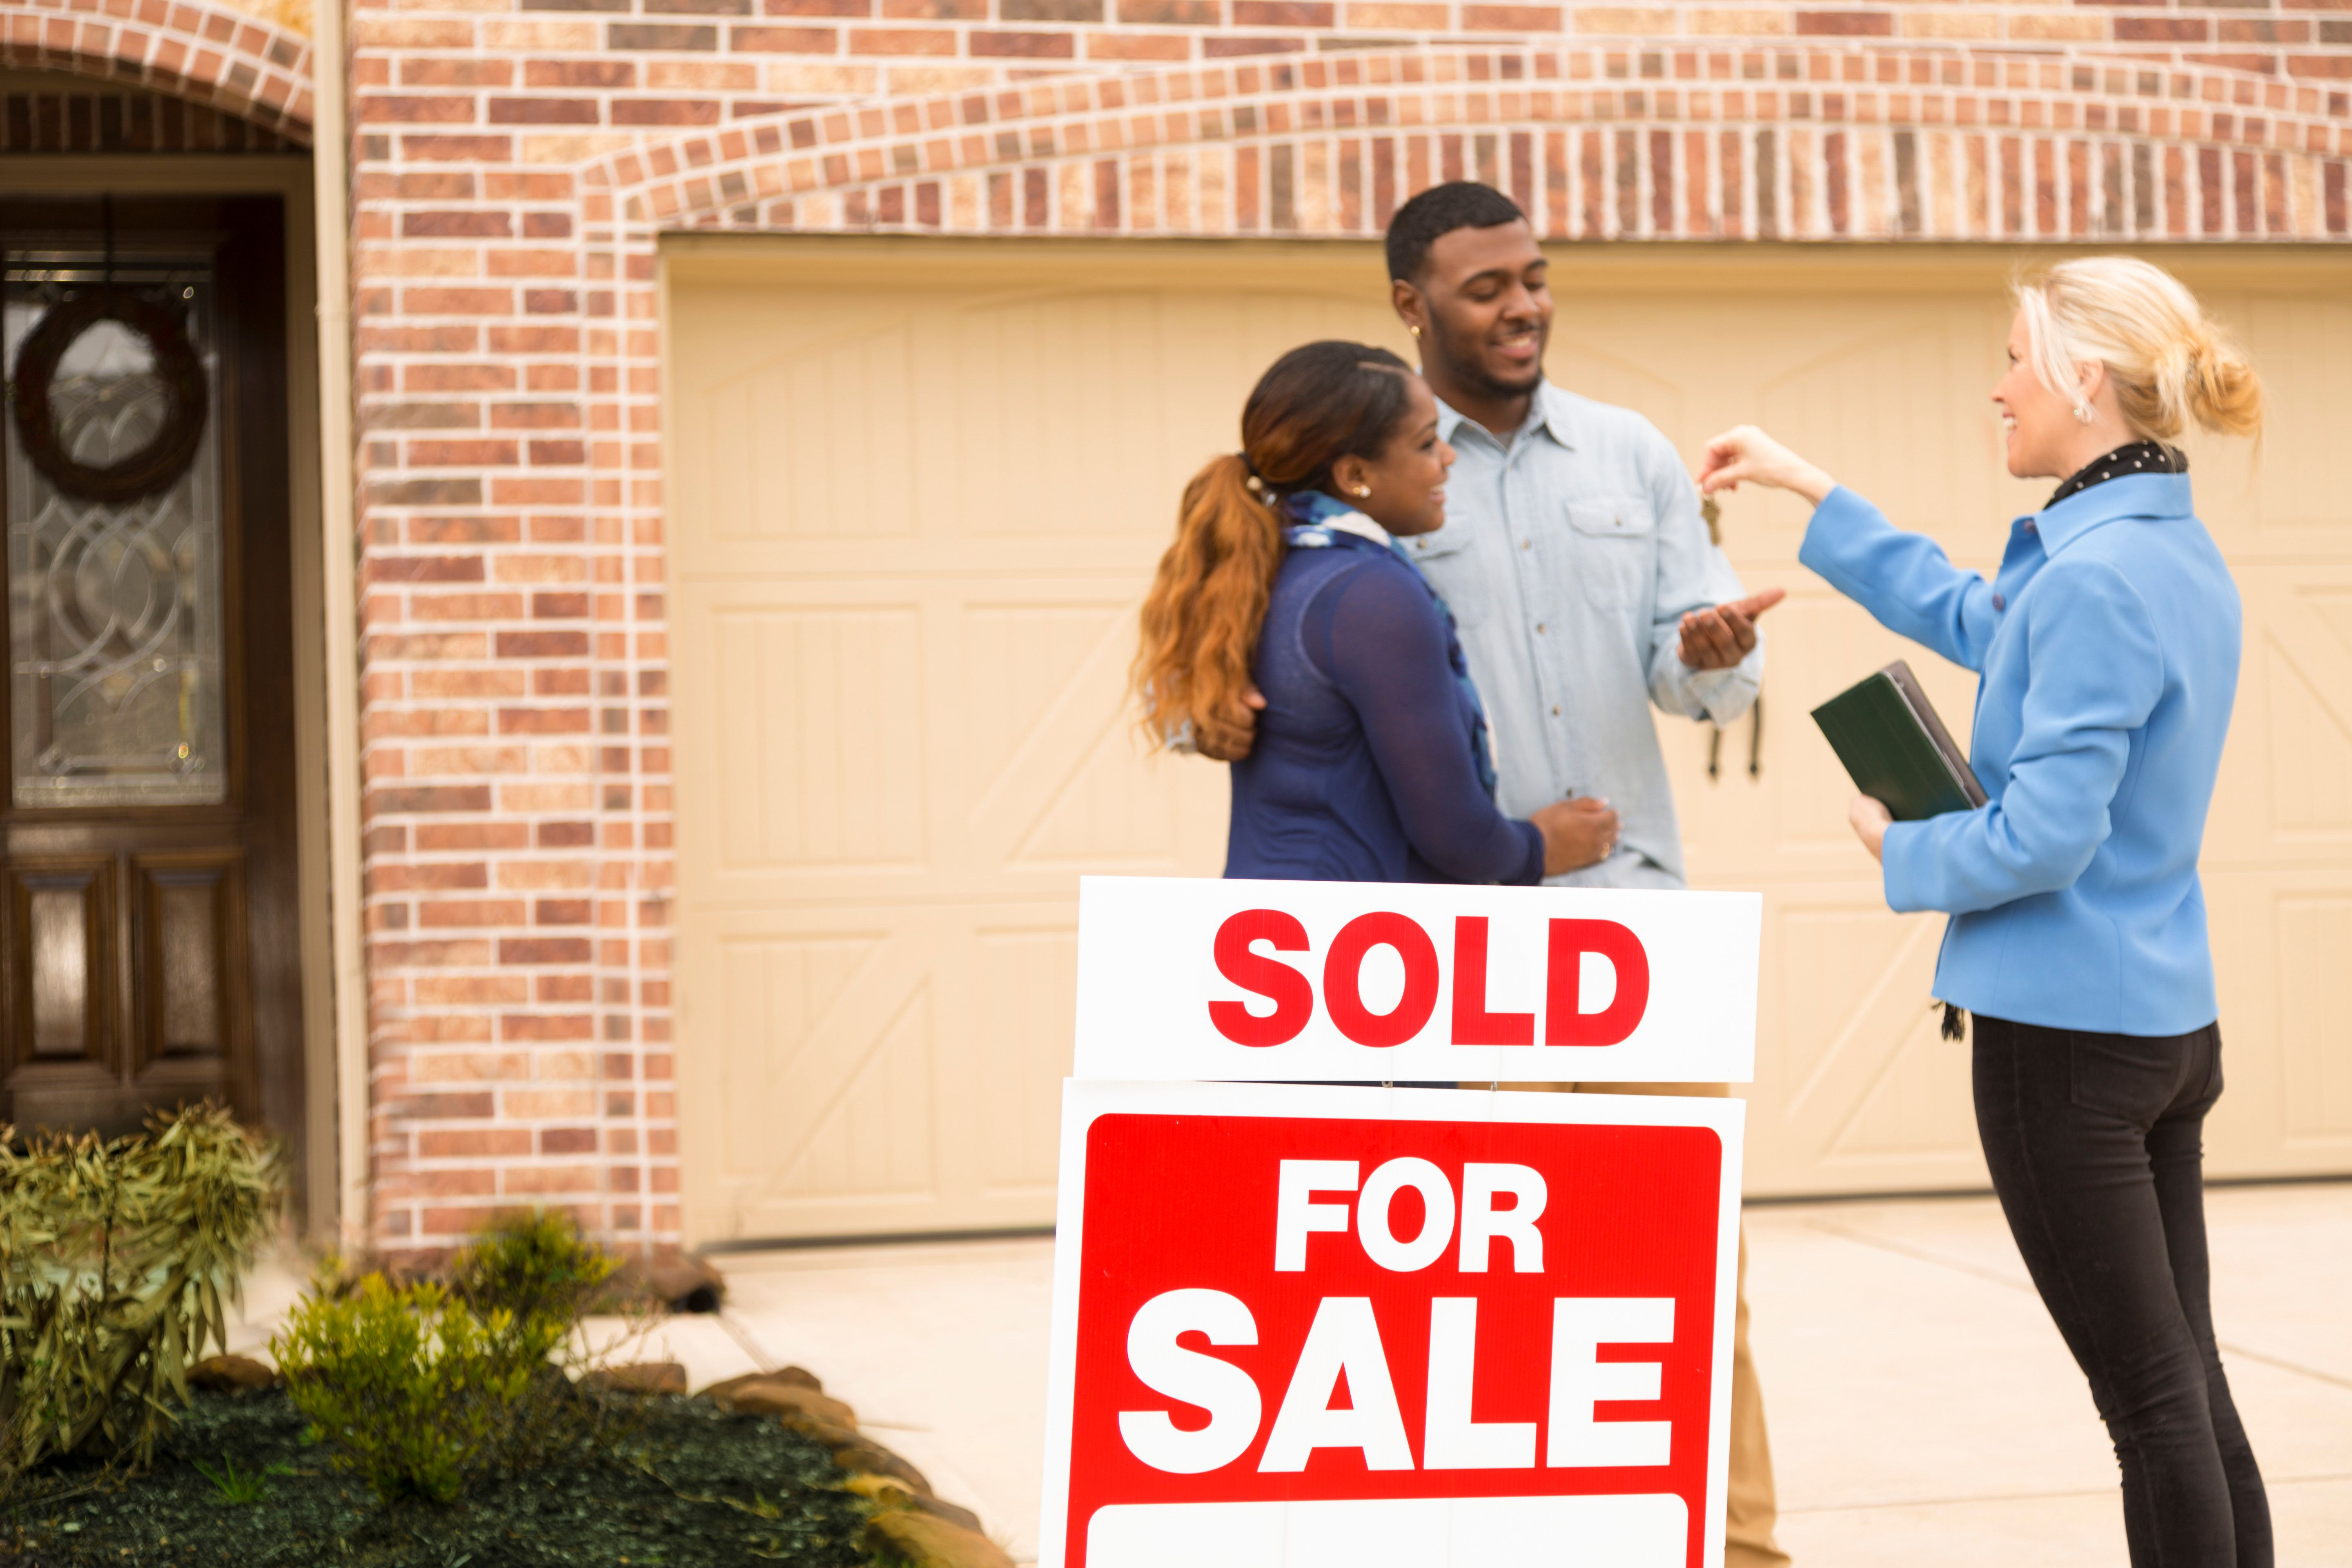 Excited African descent couple receives the keys to their first home real estate purchase from realtor.  The happy young adults stand in front of brick home.